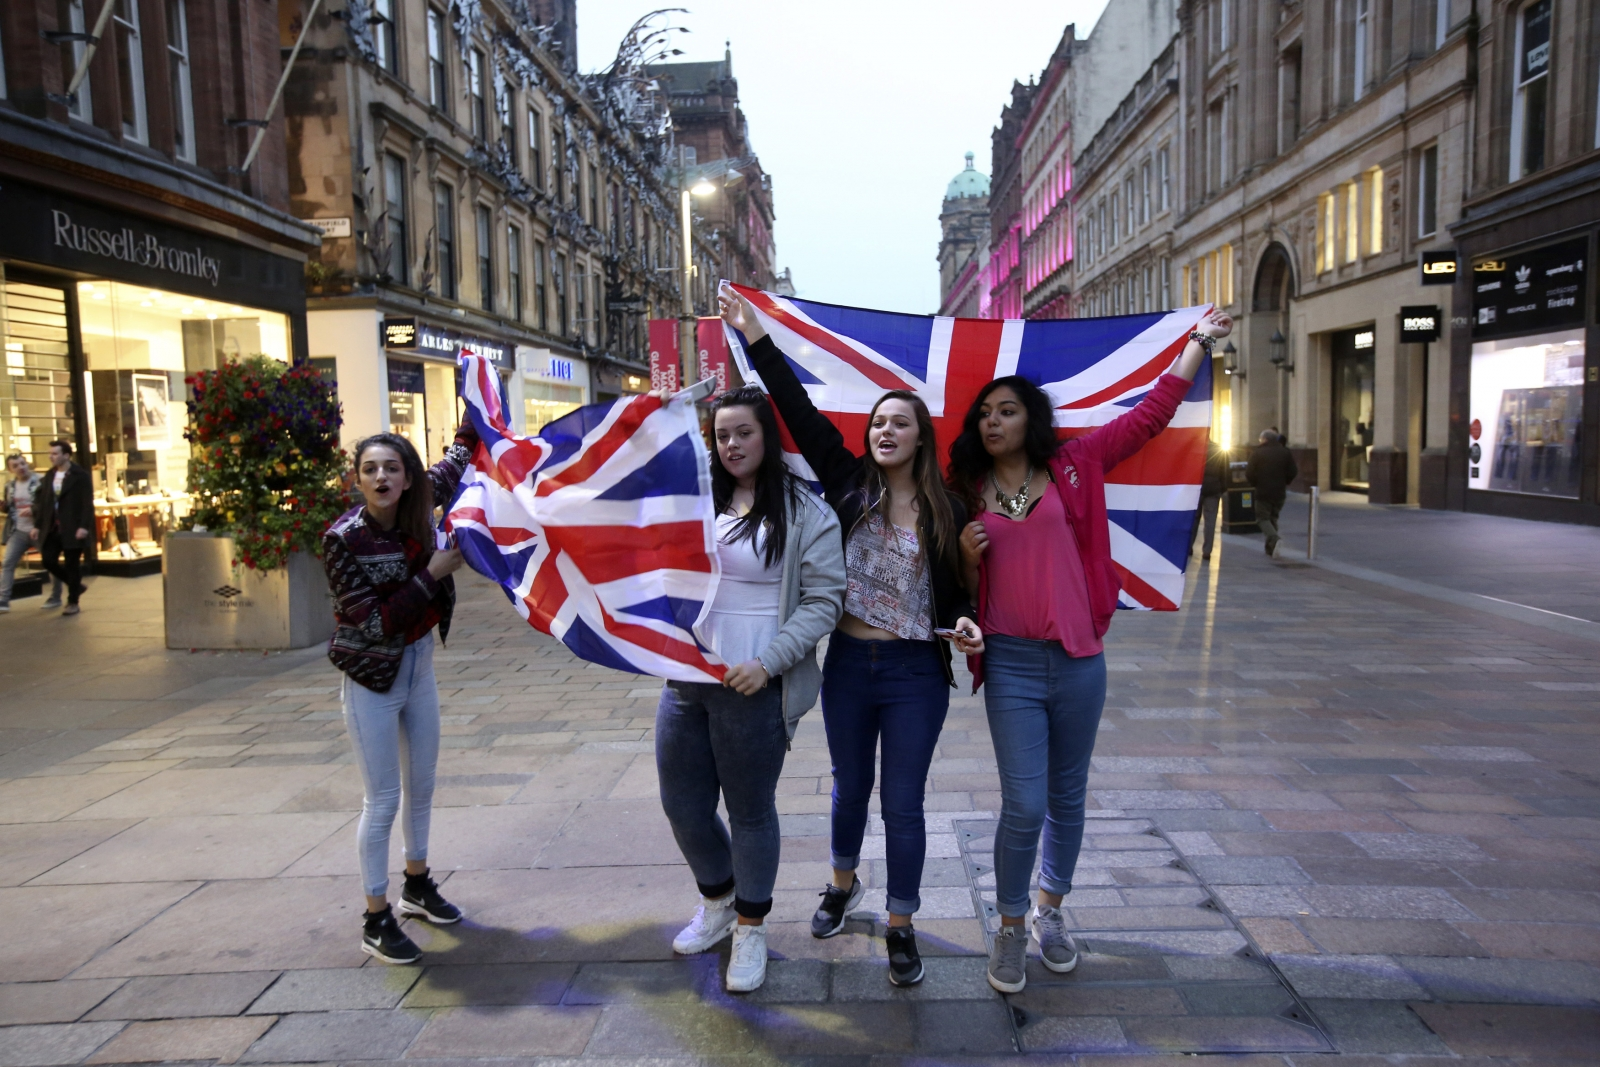 Scottish Independence Bid Prompts Salmond to Call for Lower Voting Age in General Election 2015